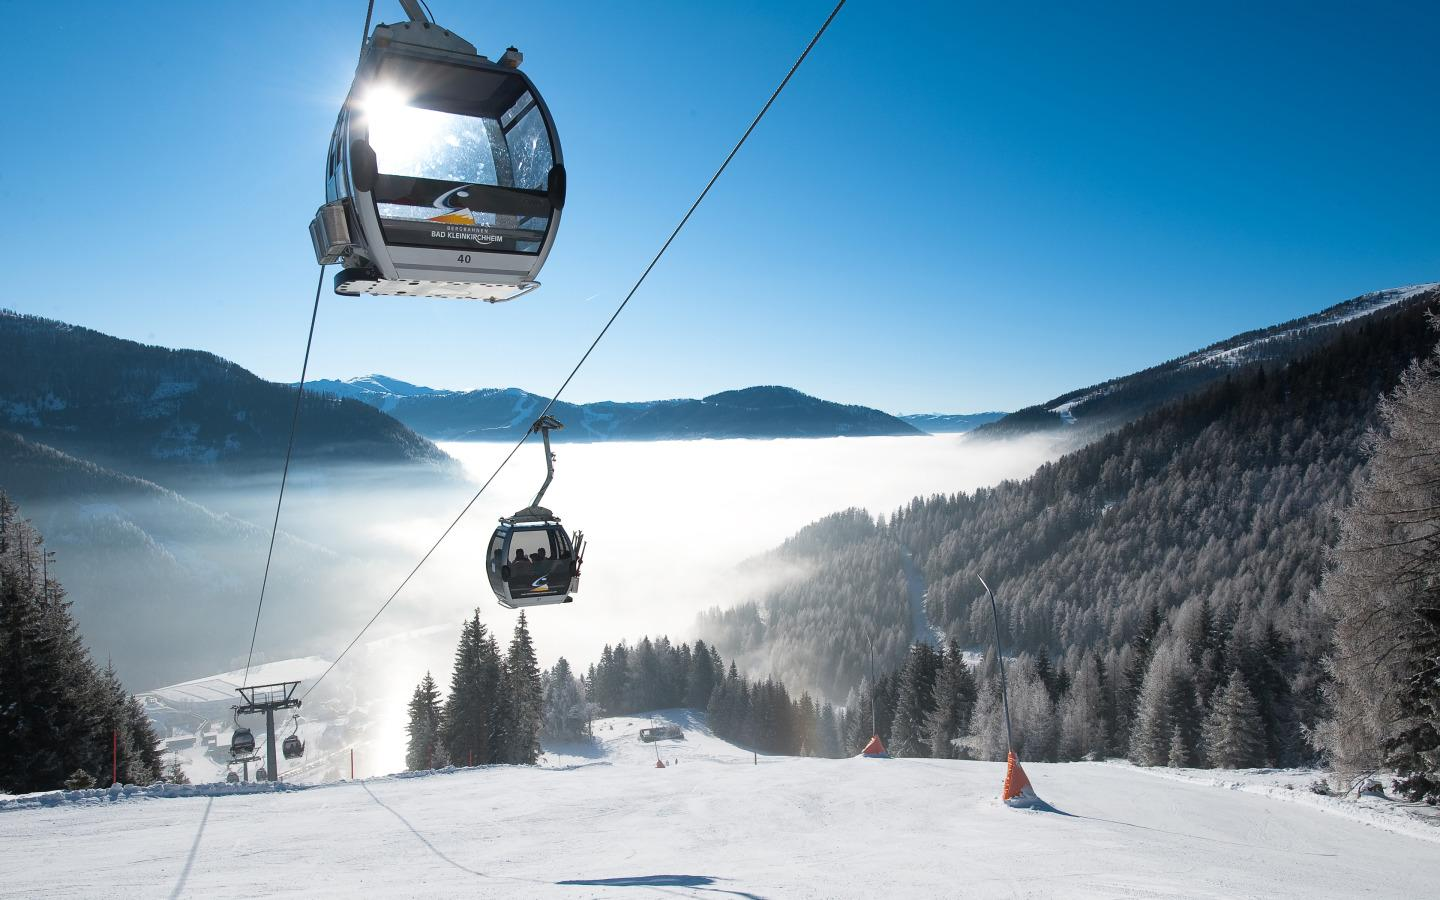 Parent Friendly Disco Kid S Ski Pass For Only 1 From 3 Night